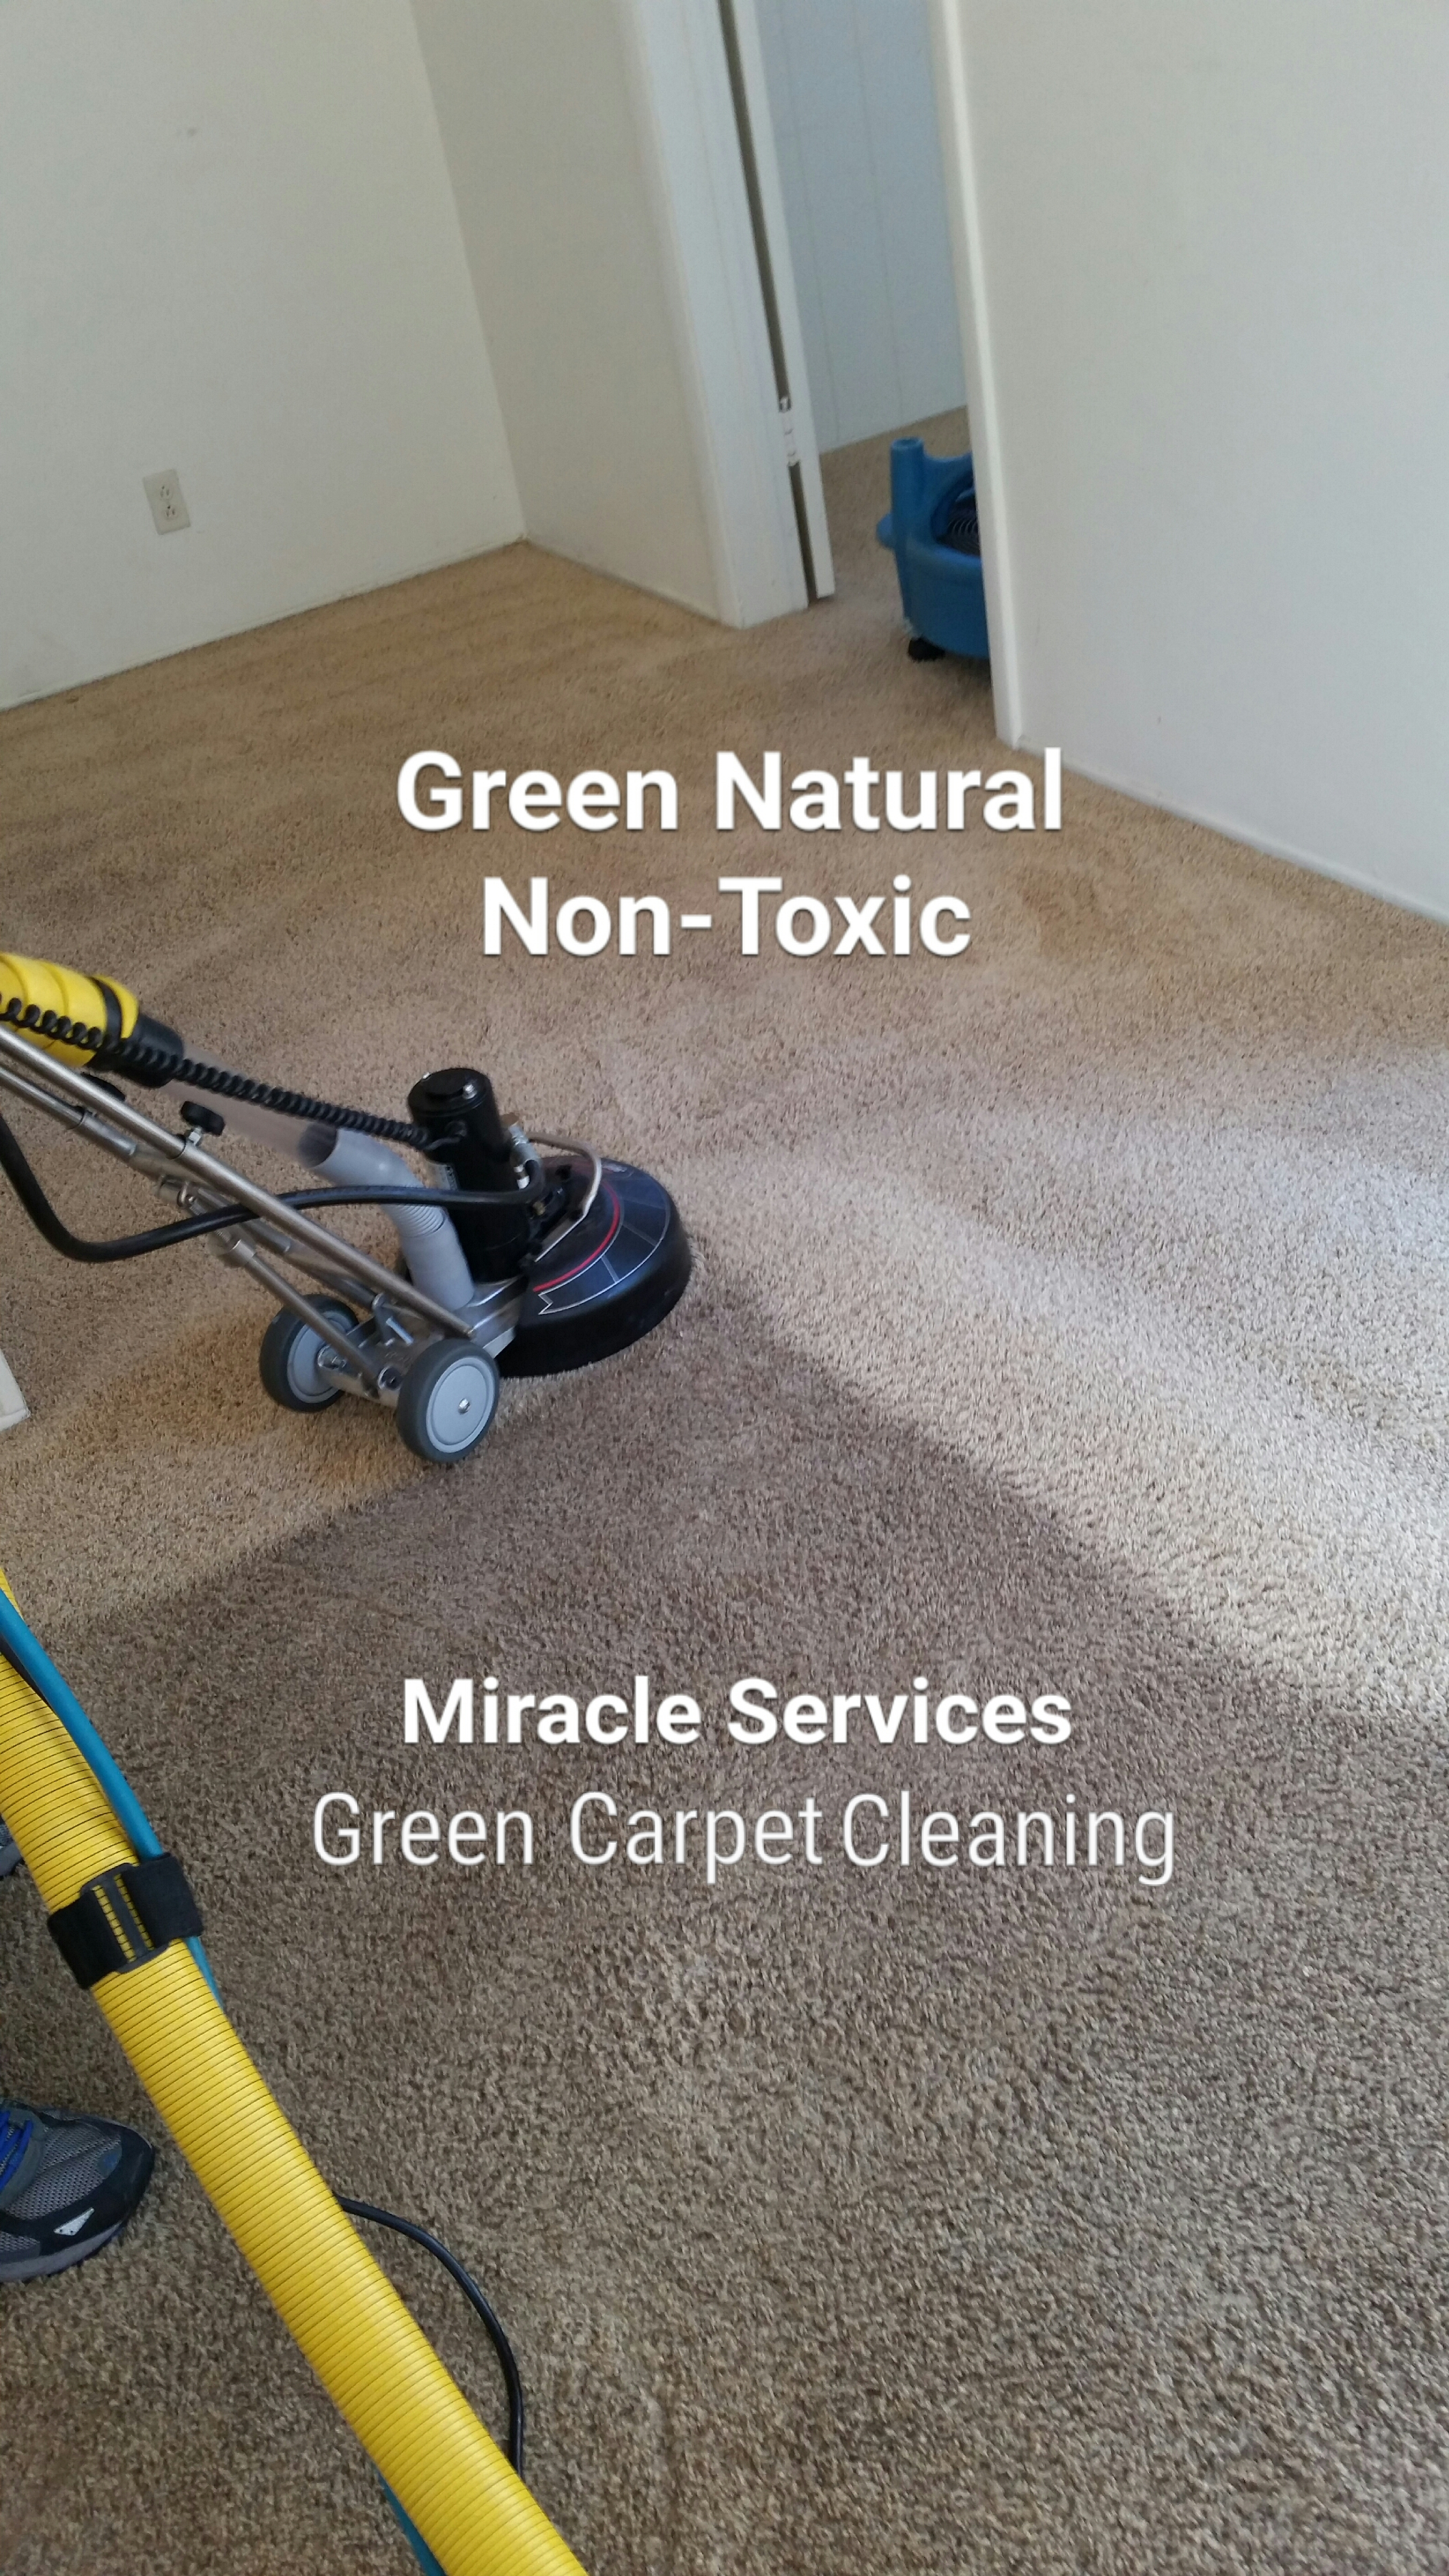 Rotary carpet extraction